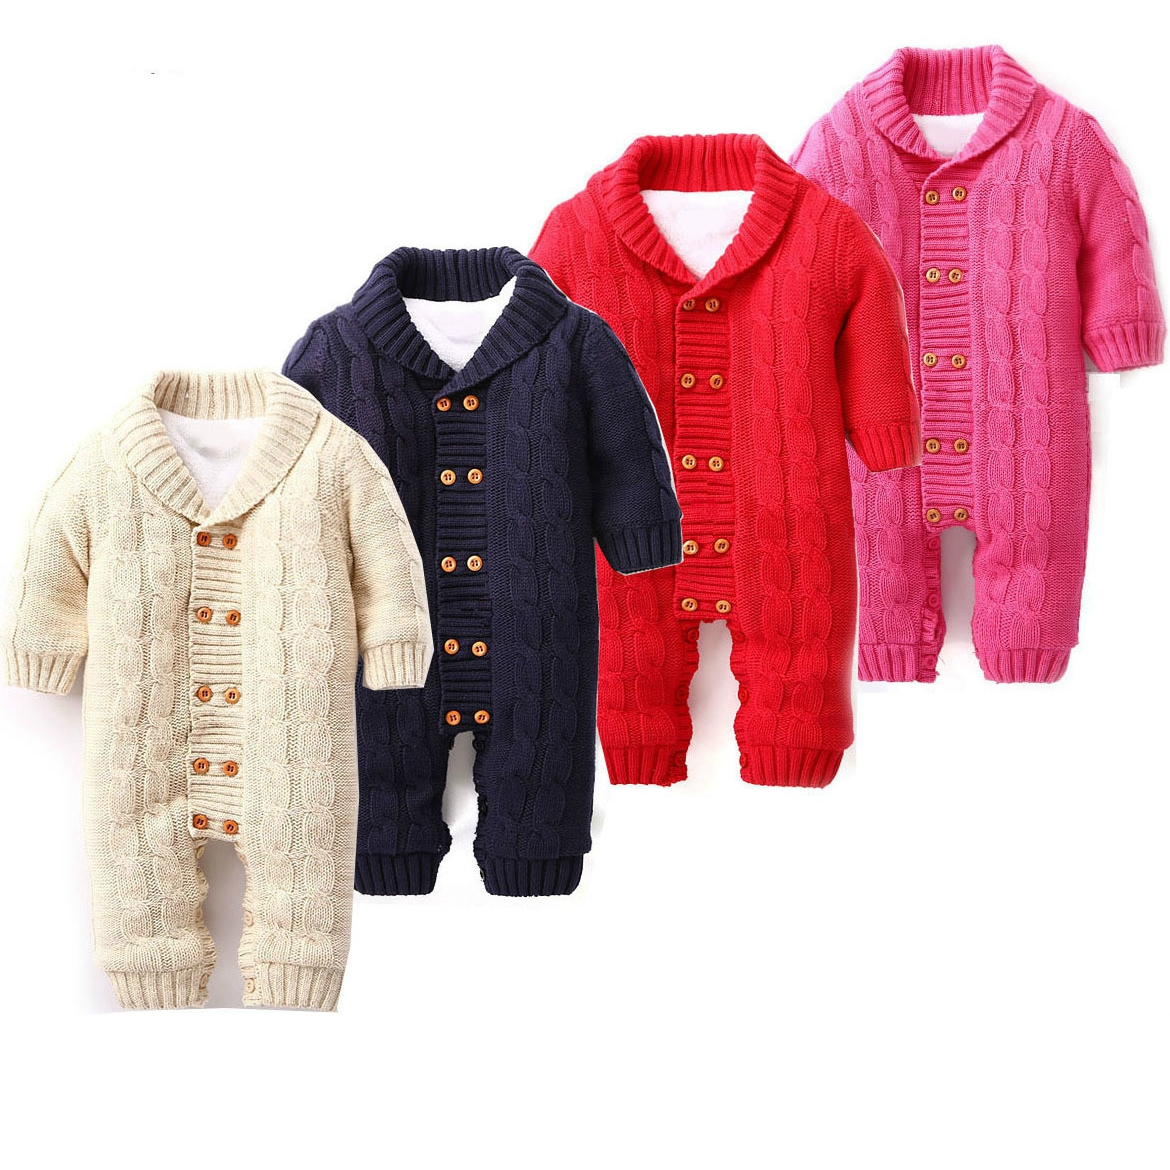 Thick Cotton Warm Infant Baby Rompers Winter Clothes Newborn Baby Boy Girl Knitted Sweater Jumpsuit Hooded Kid Toddler Outerwear newborn baby rompers baby clothing 100% cotton infant jumpsuit ropa bebe long sleeve girl boys rompers costumes baby romper